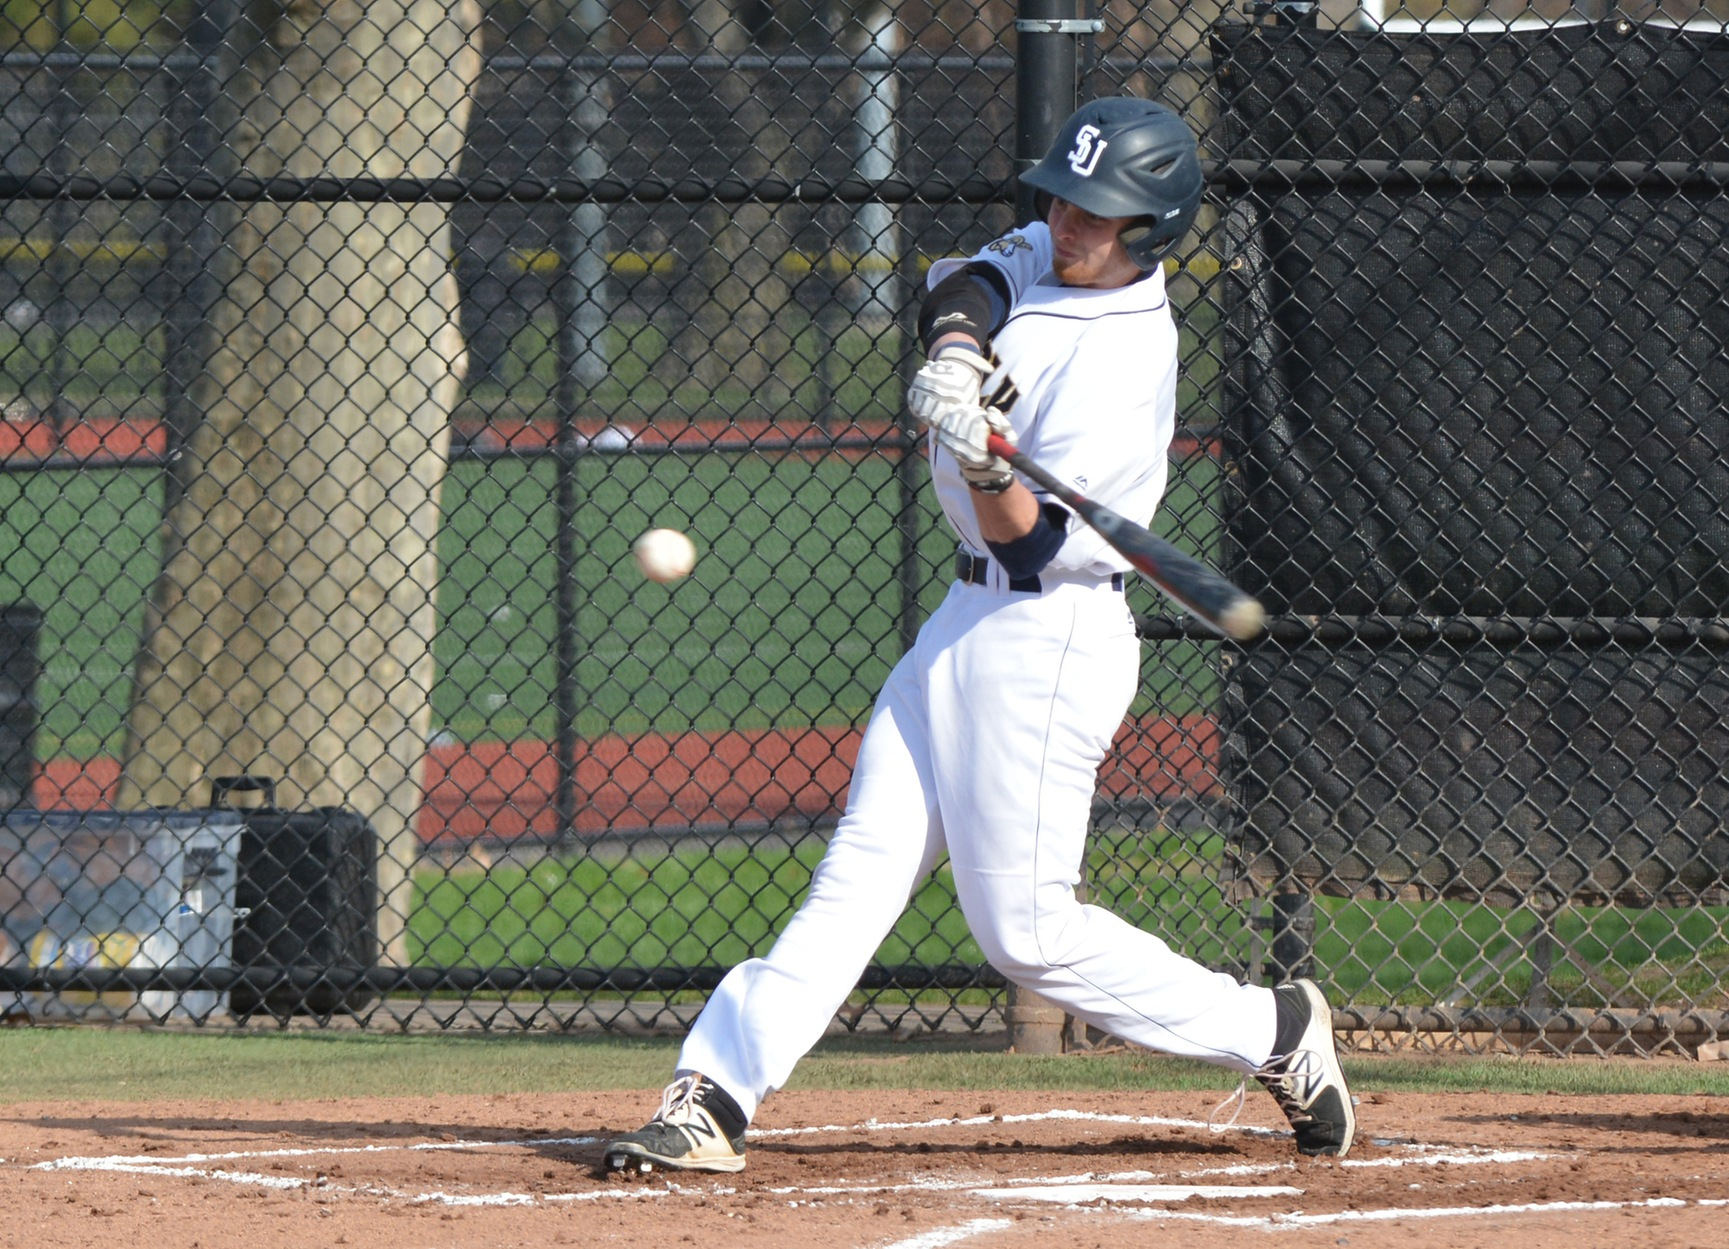 UMass Dartmouth Charges Late to Take Down Baseball 13-8